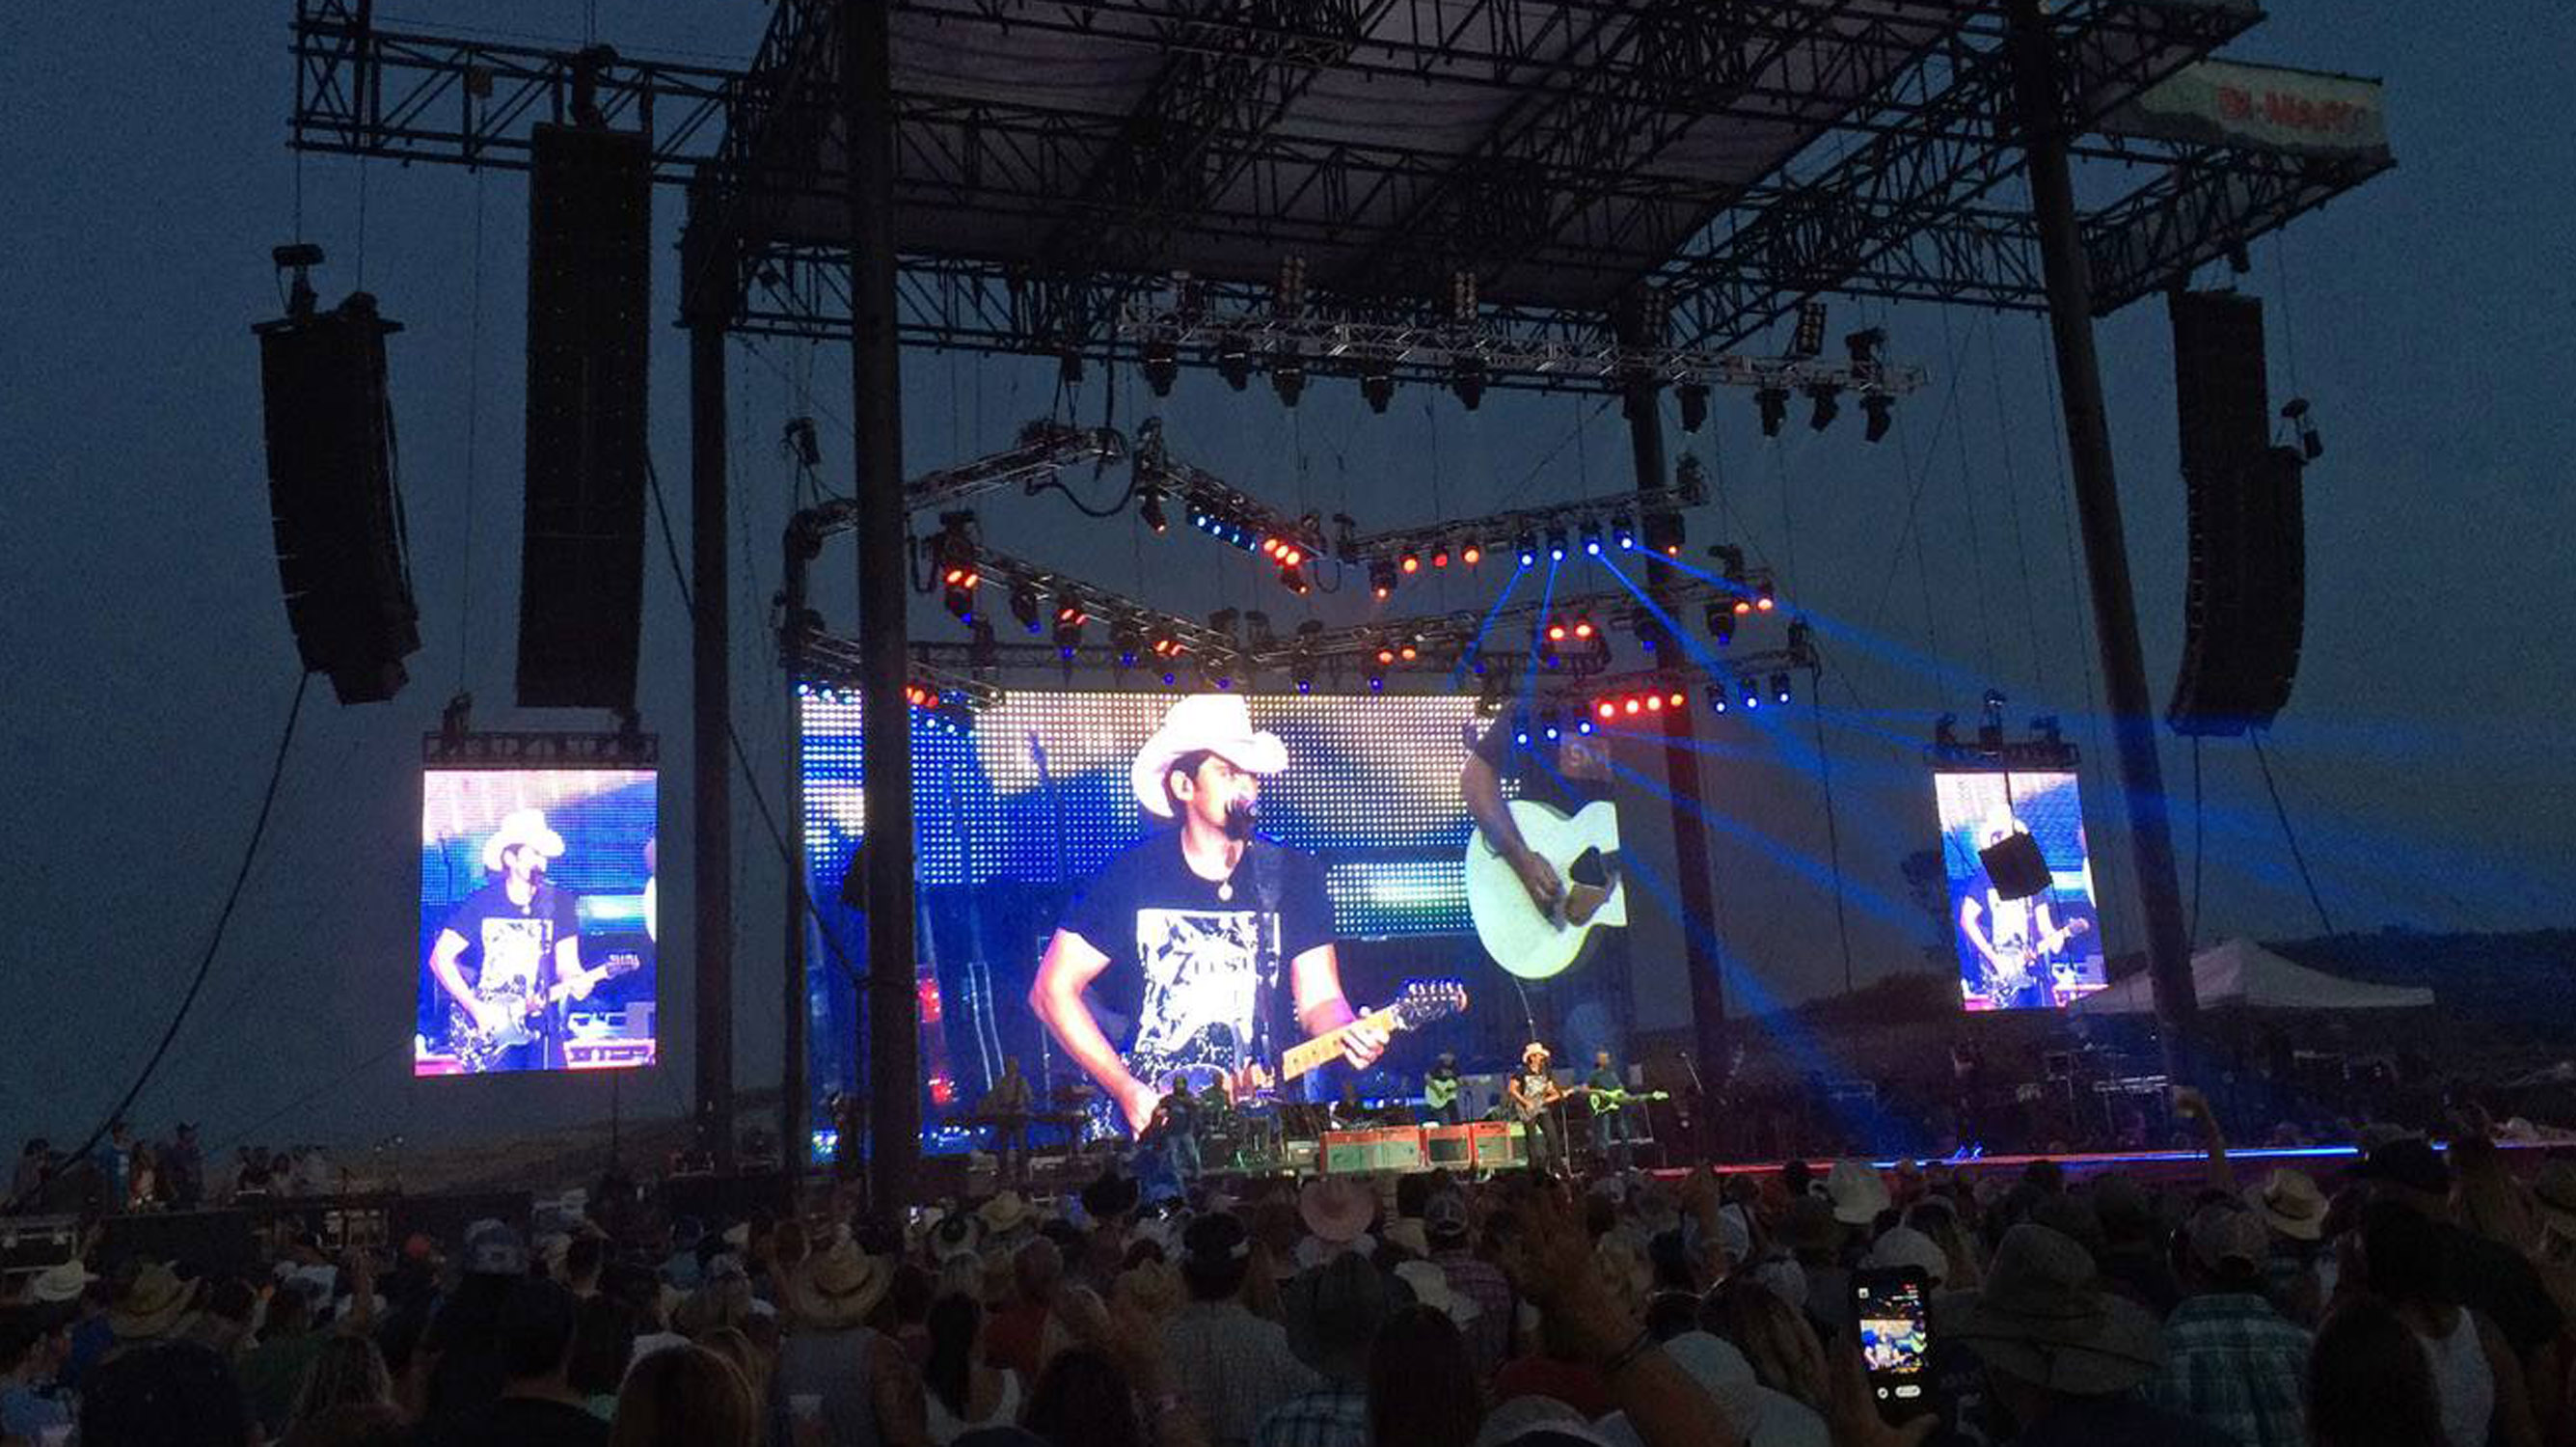 50'x 25' Brad Paisley LED video wall